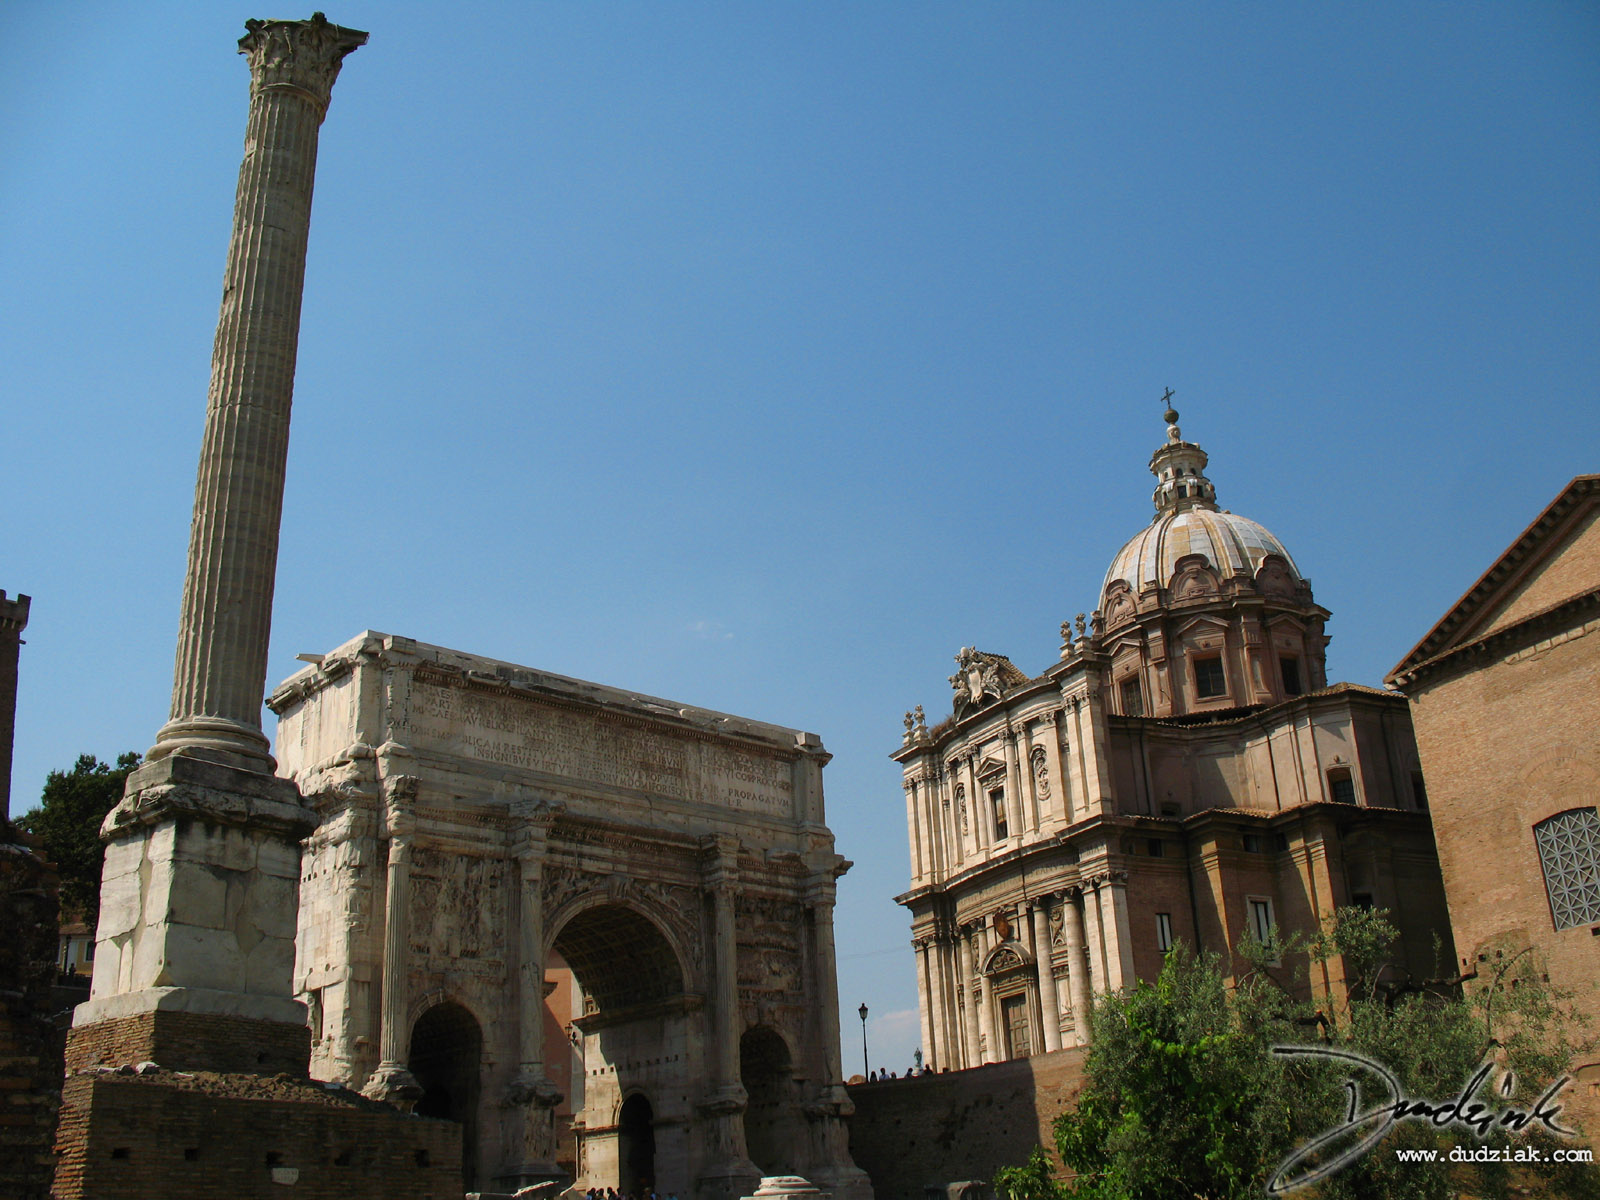 Picture of the Arch of Septimius Severus standing in the western side of the Roman Forum with the Column of Phocas in the foreground.